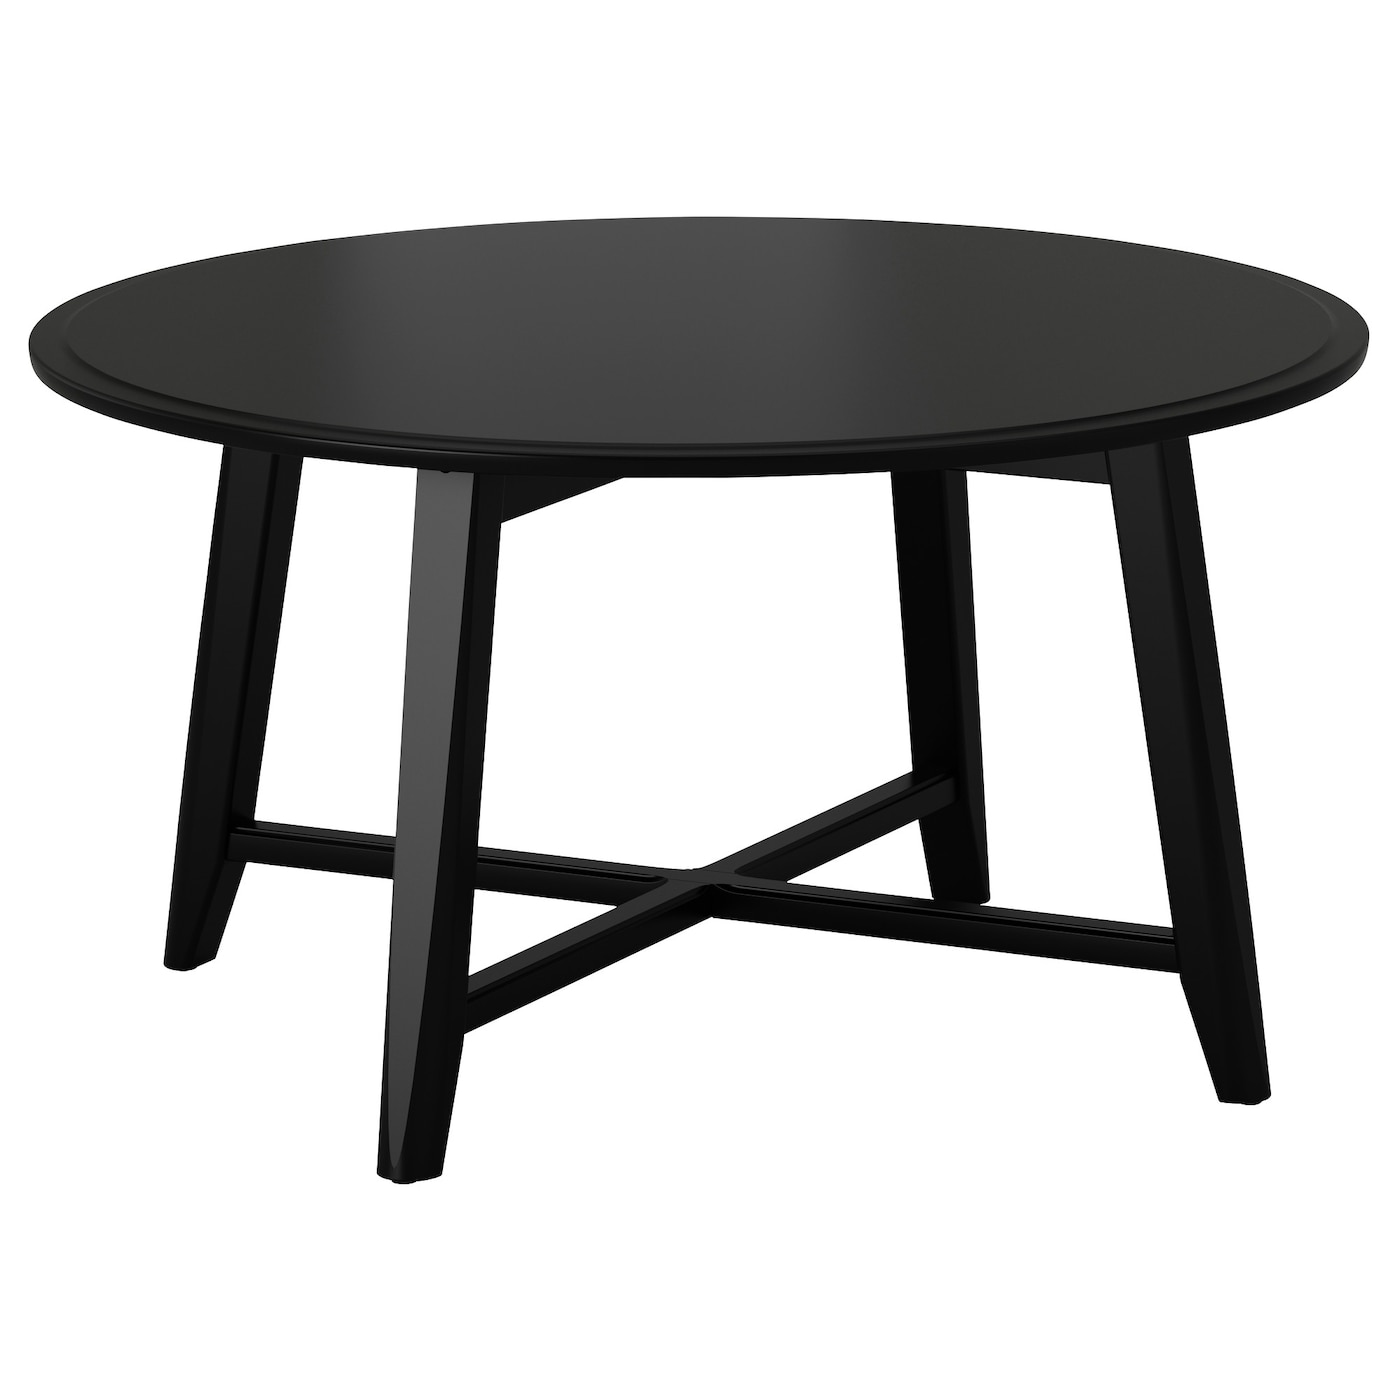 KRAGSTA Coffee Table Black 90 Cm